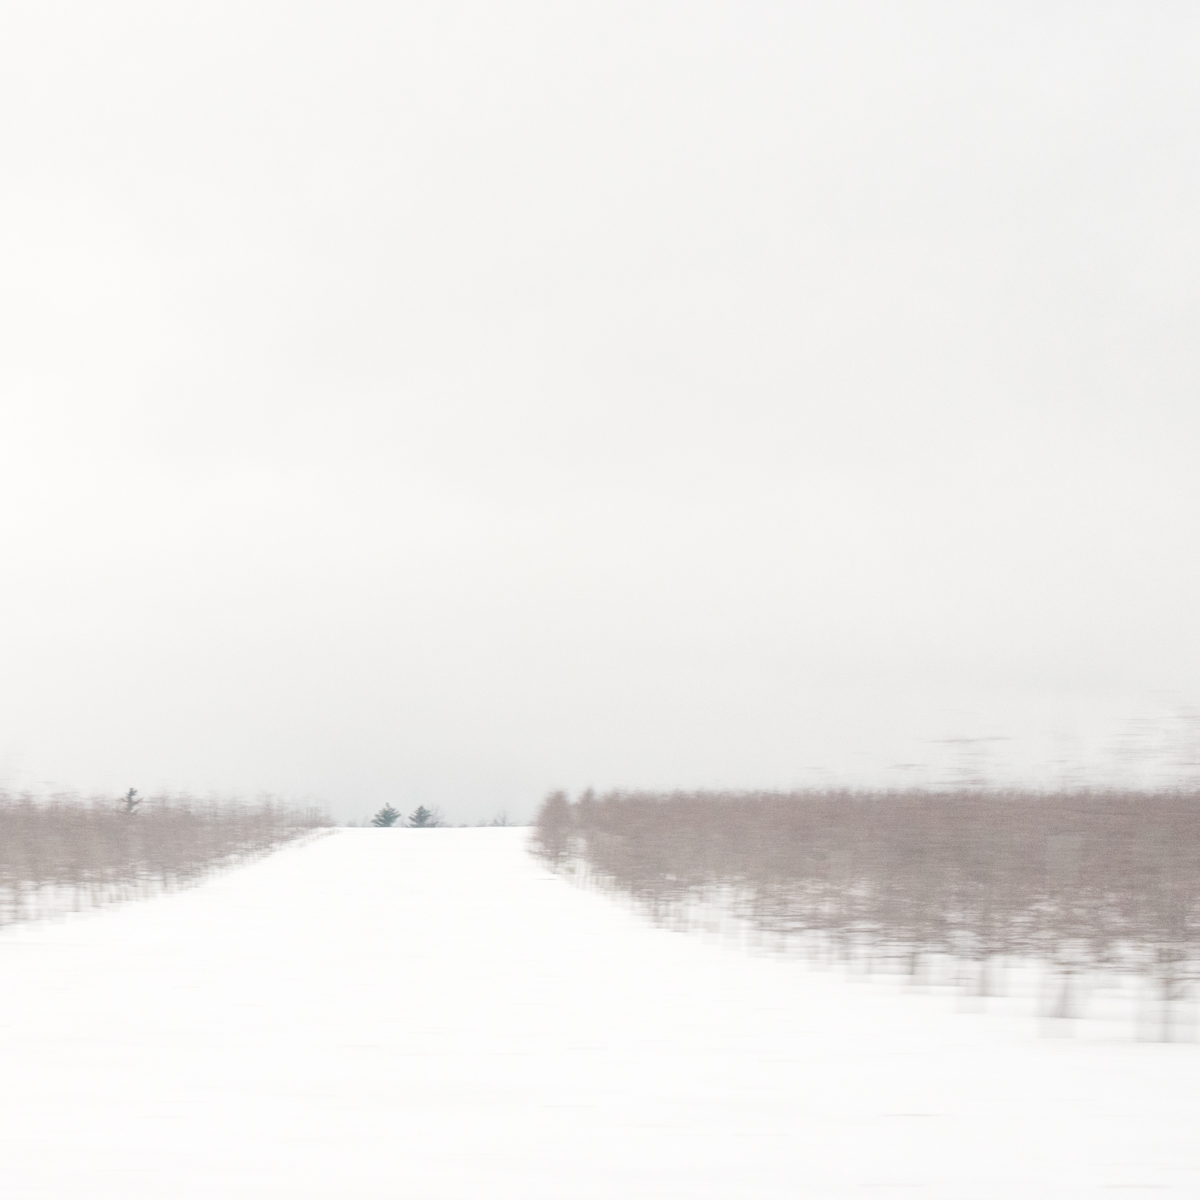 DebraBilow_Winter Field North Country_No. 6.jpg